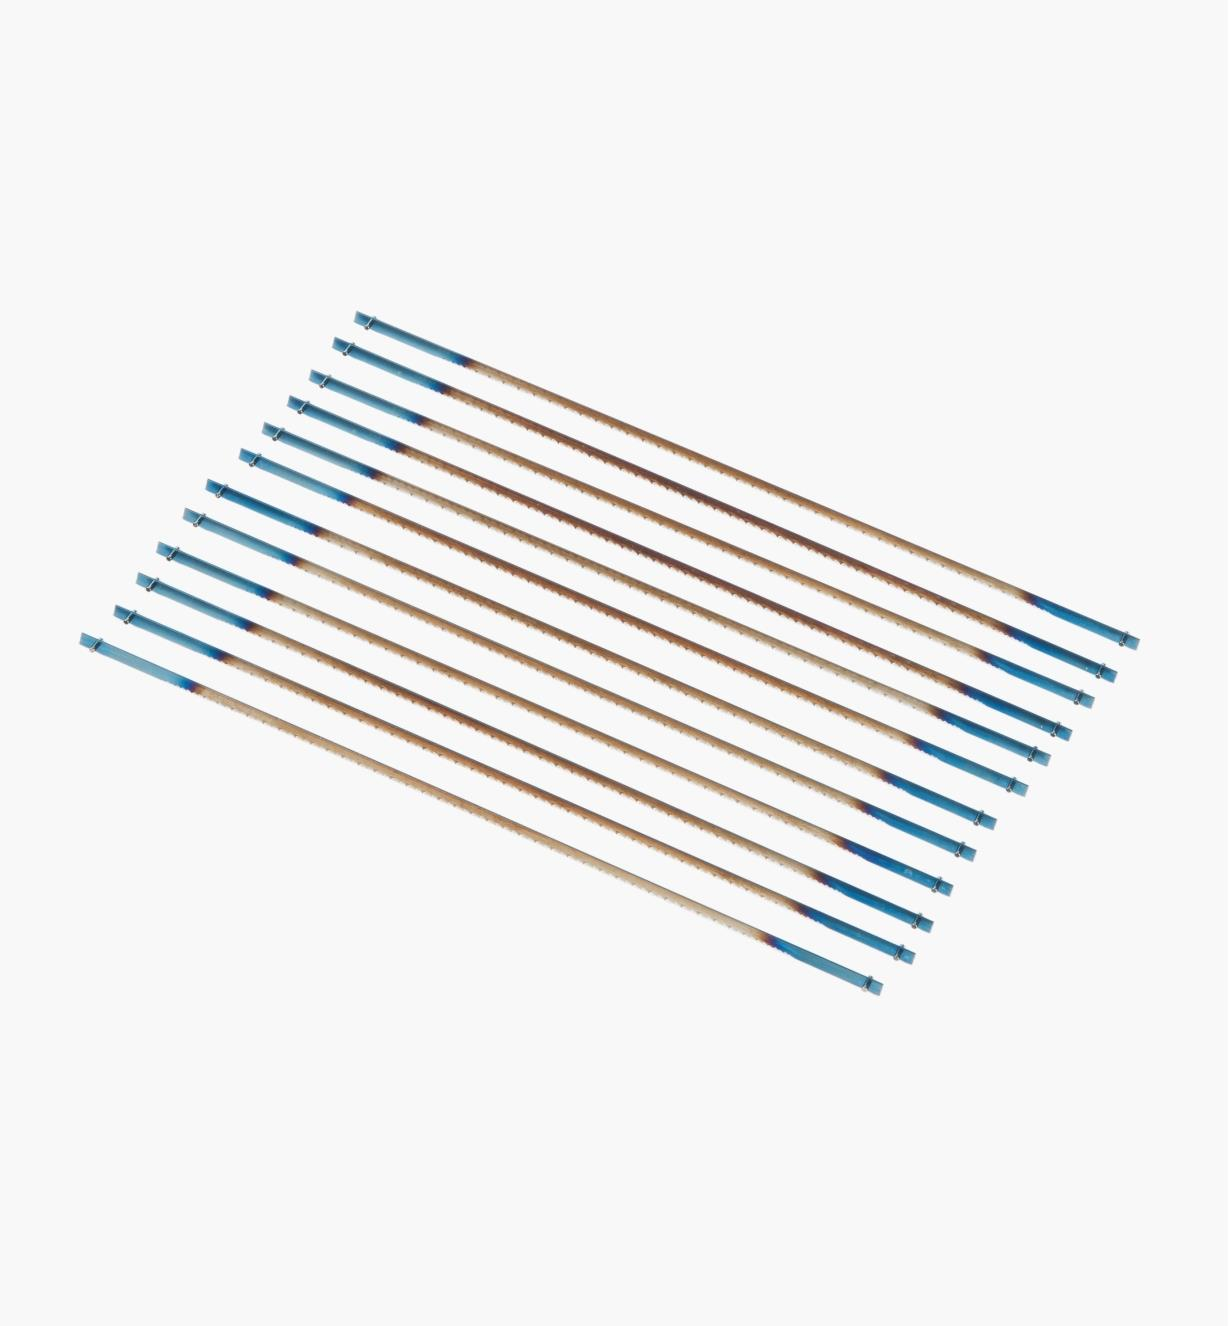 02T1080 - 10tpi Pégas Coping Saw Blades, pkg. of 12